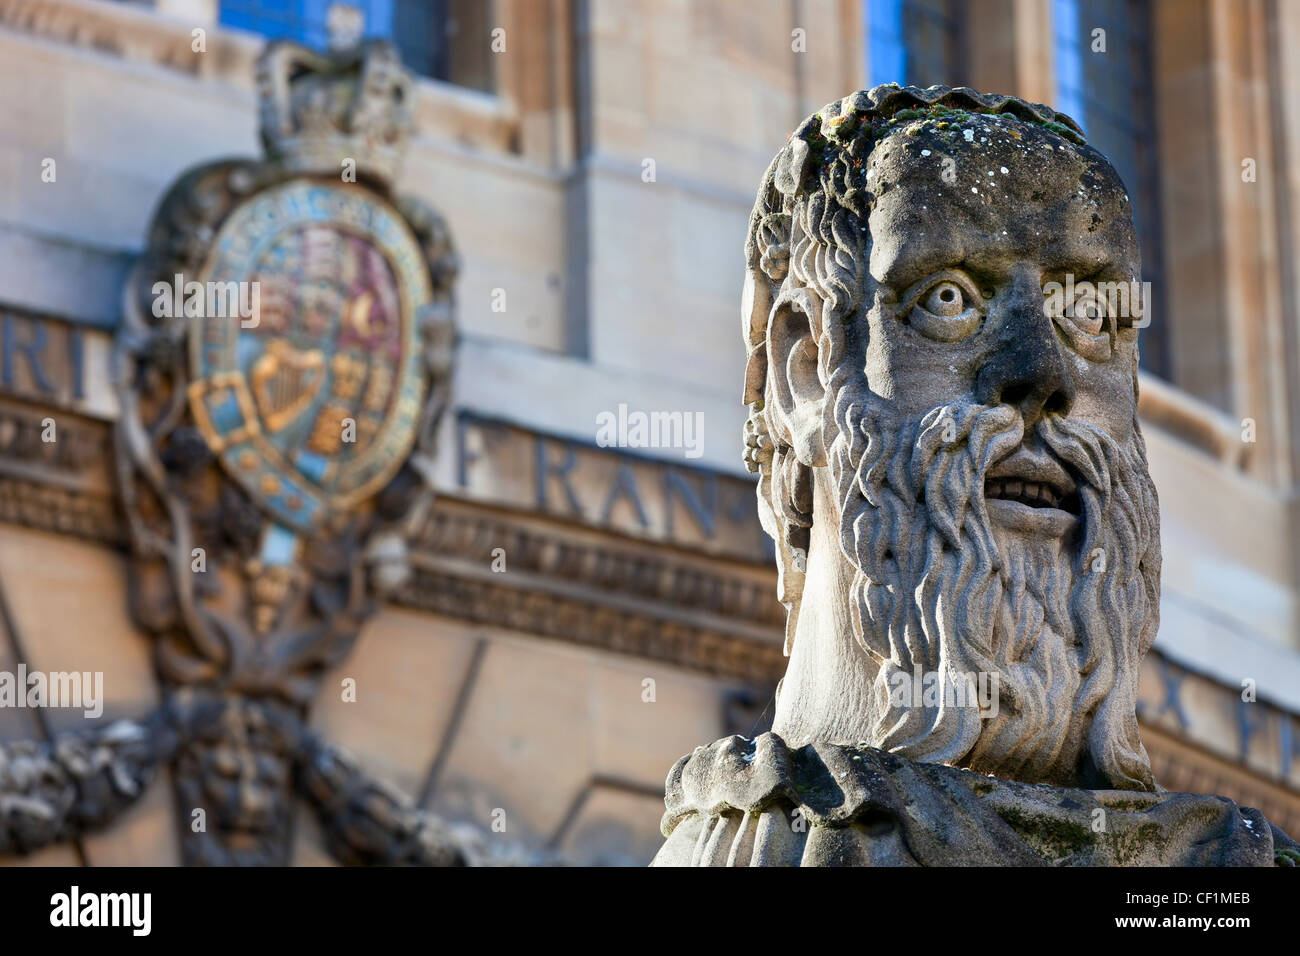 The head of an 'Emperor', one of thirteen busts on top of pillars marking the front boundary of the Sheldonian Theatre, Stock Photo